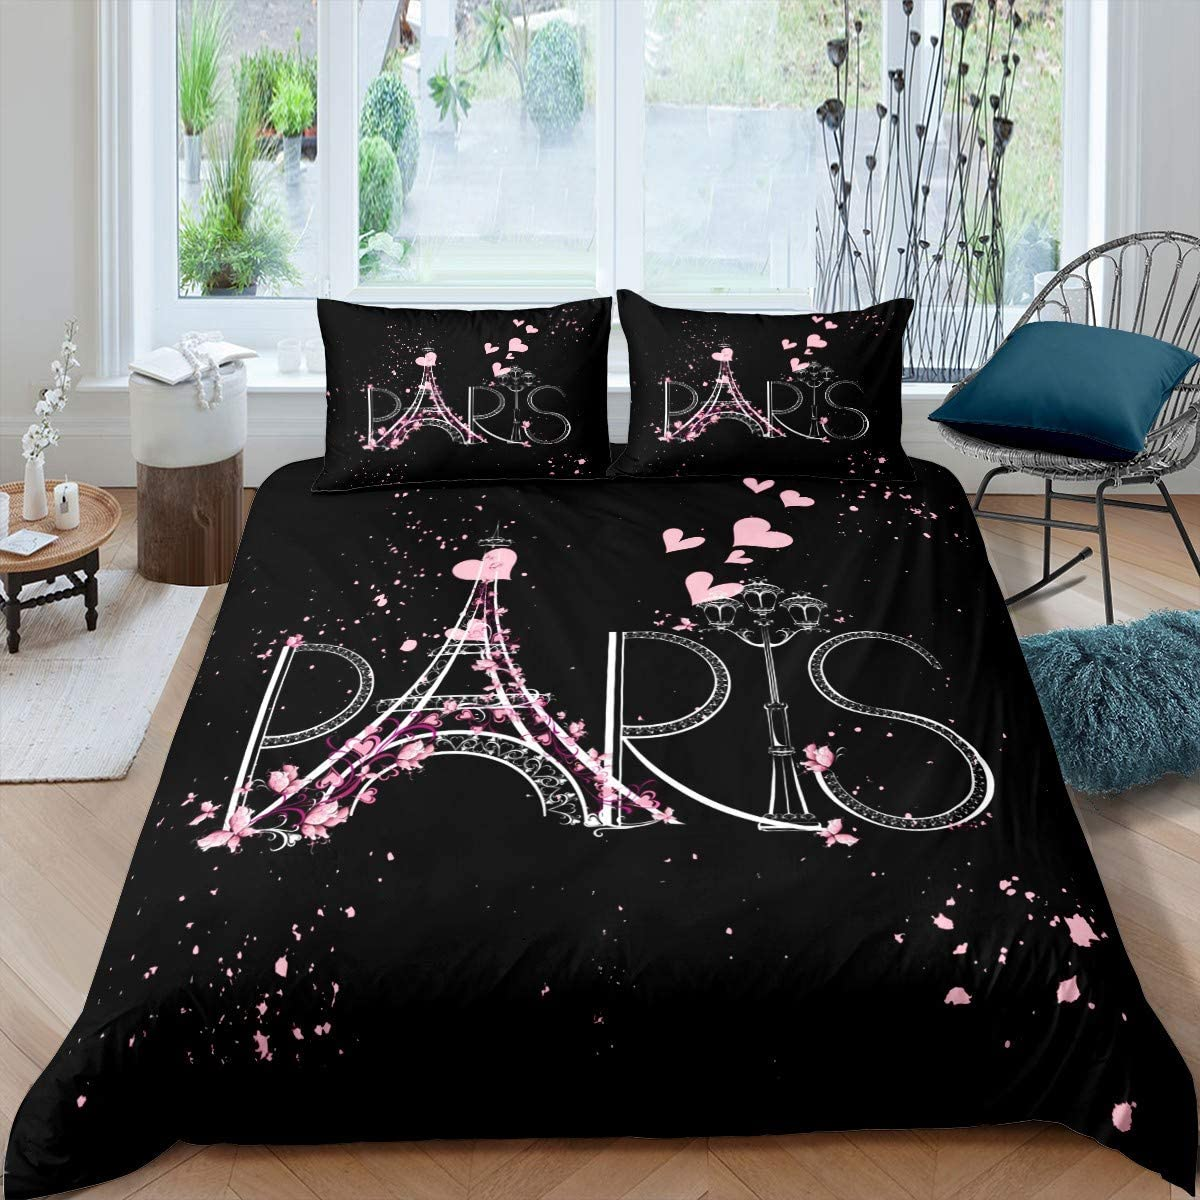 Eiffel Tower Duvet Cover Chic Paris Bedding Set Romantic Theme Comforter Cover for Boys Girls Children Teens Black Pink Bedroom Decor Modern French Style Bedspread Cover Twin Size with 1 Pillow Case